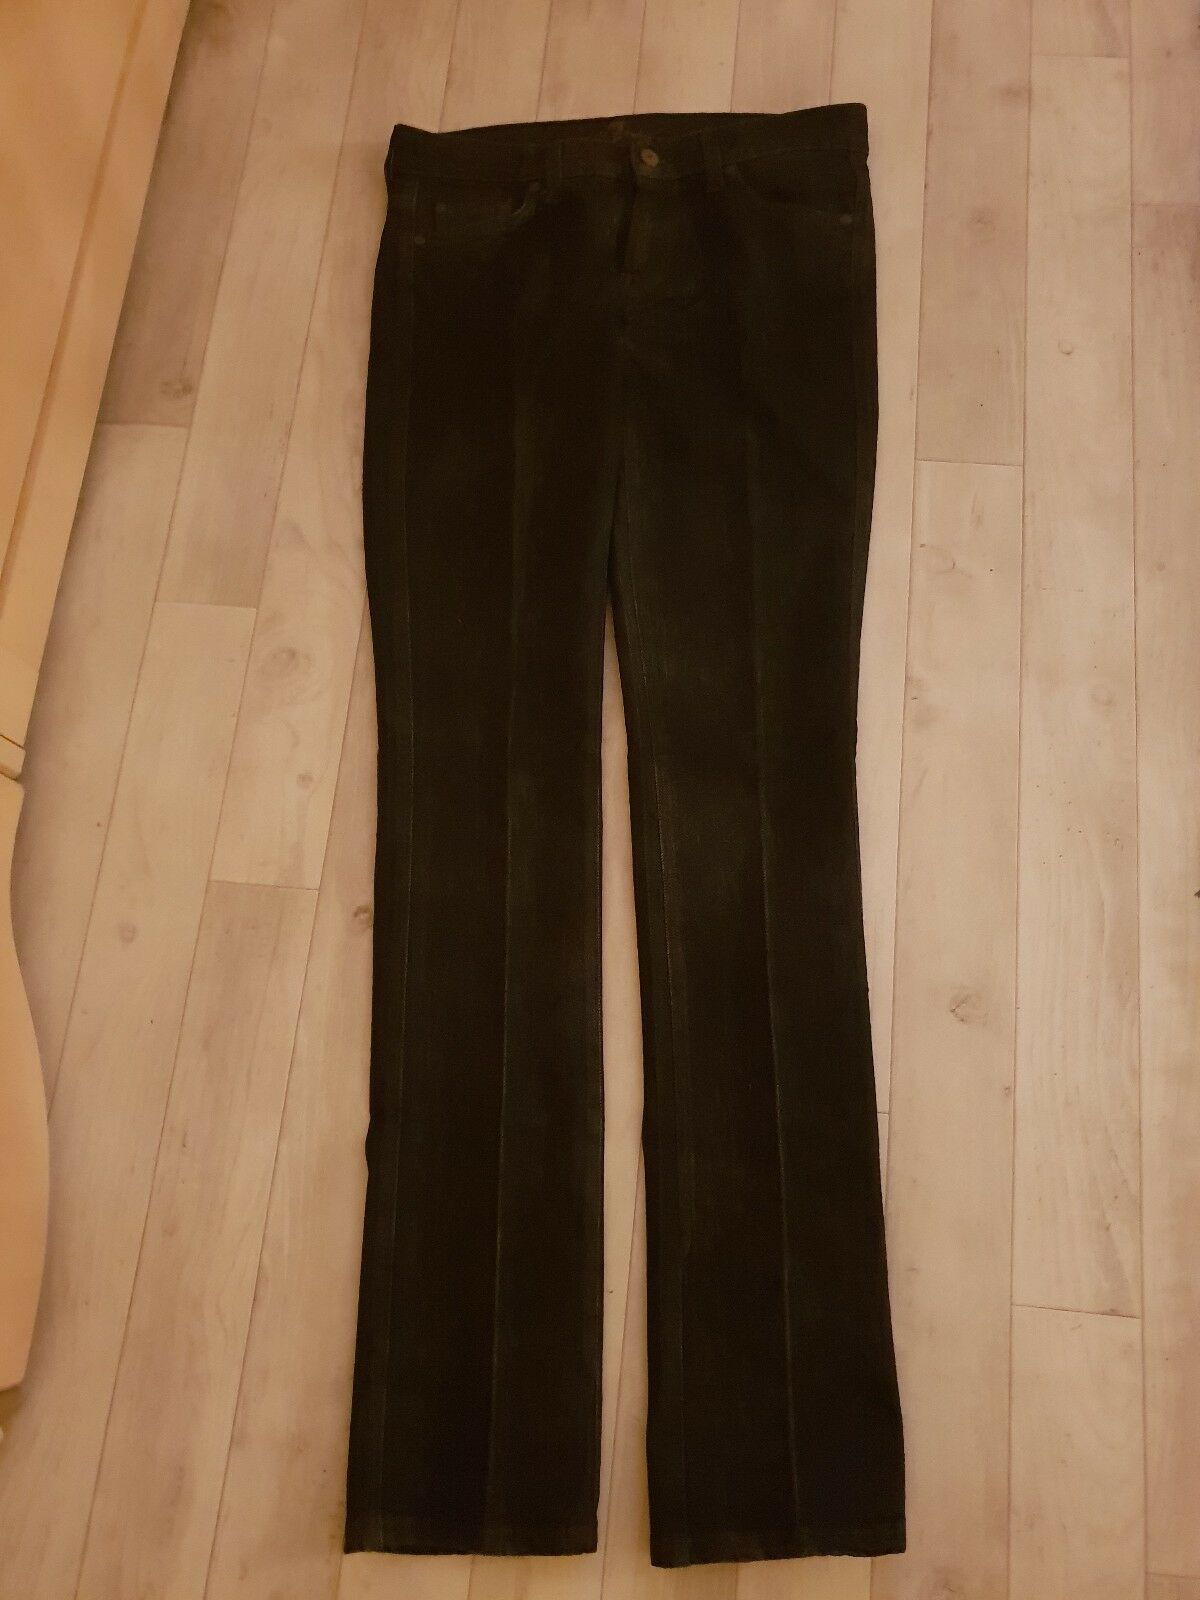 Seven for all mankind Jeans Gr. 27 34 34 34 TOP 3c0d05